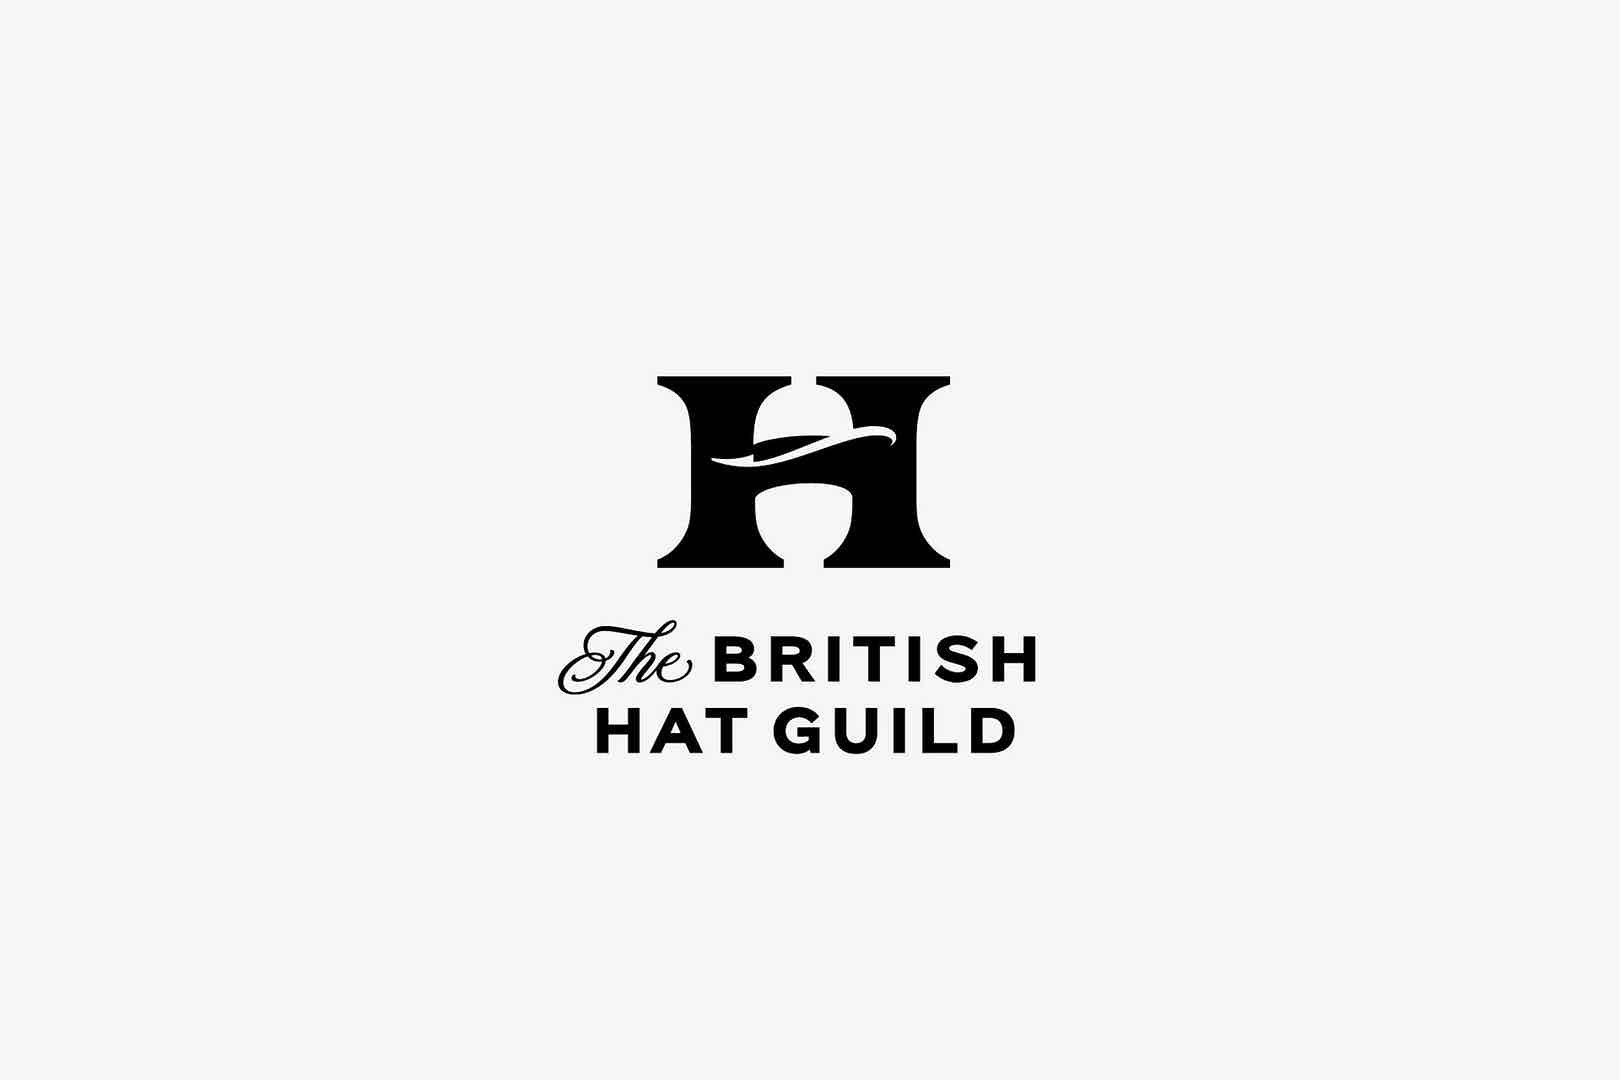 British Hat Guild rebrand